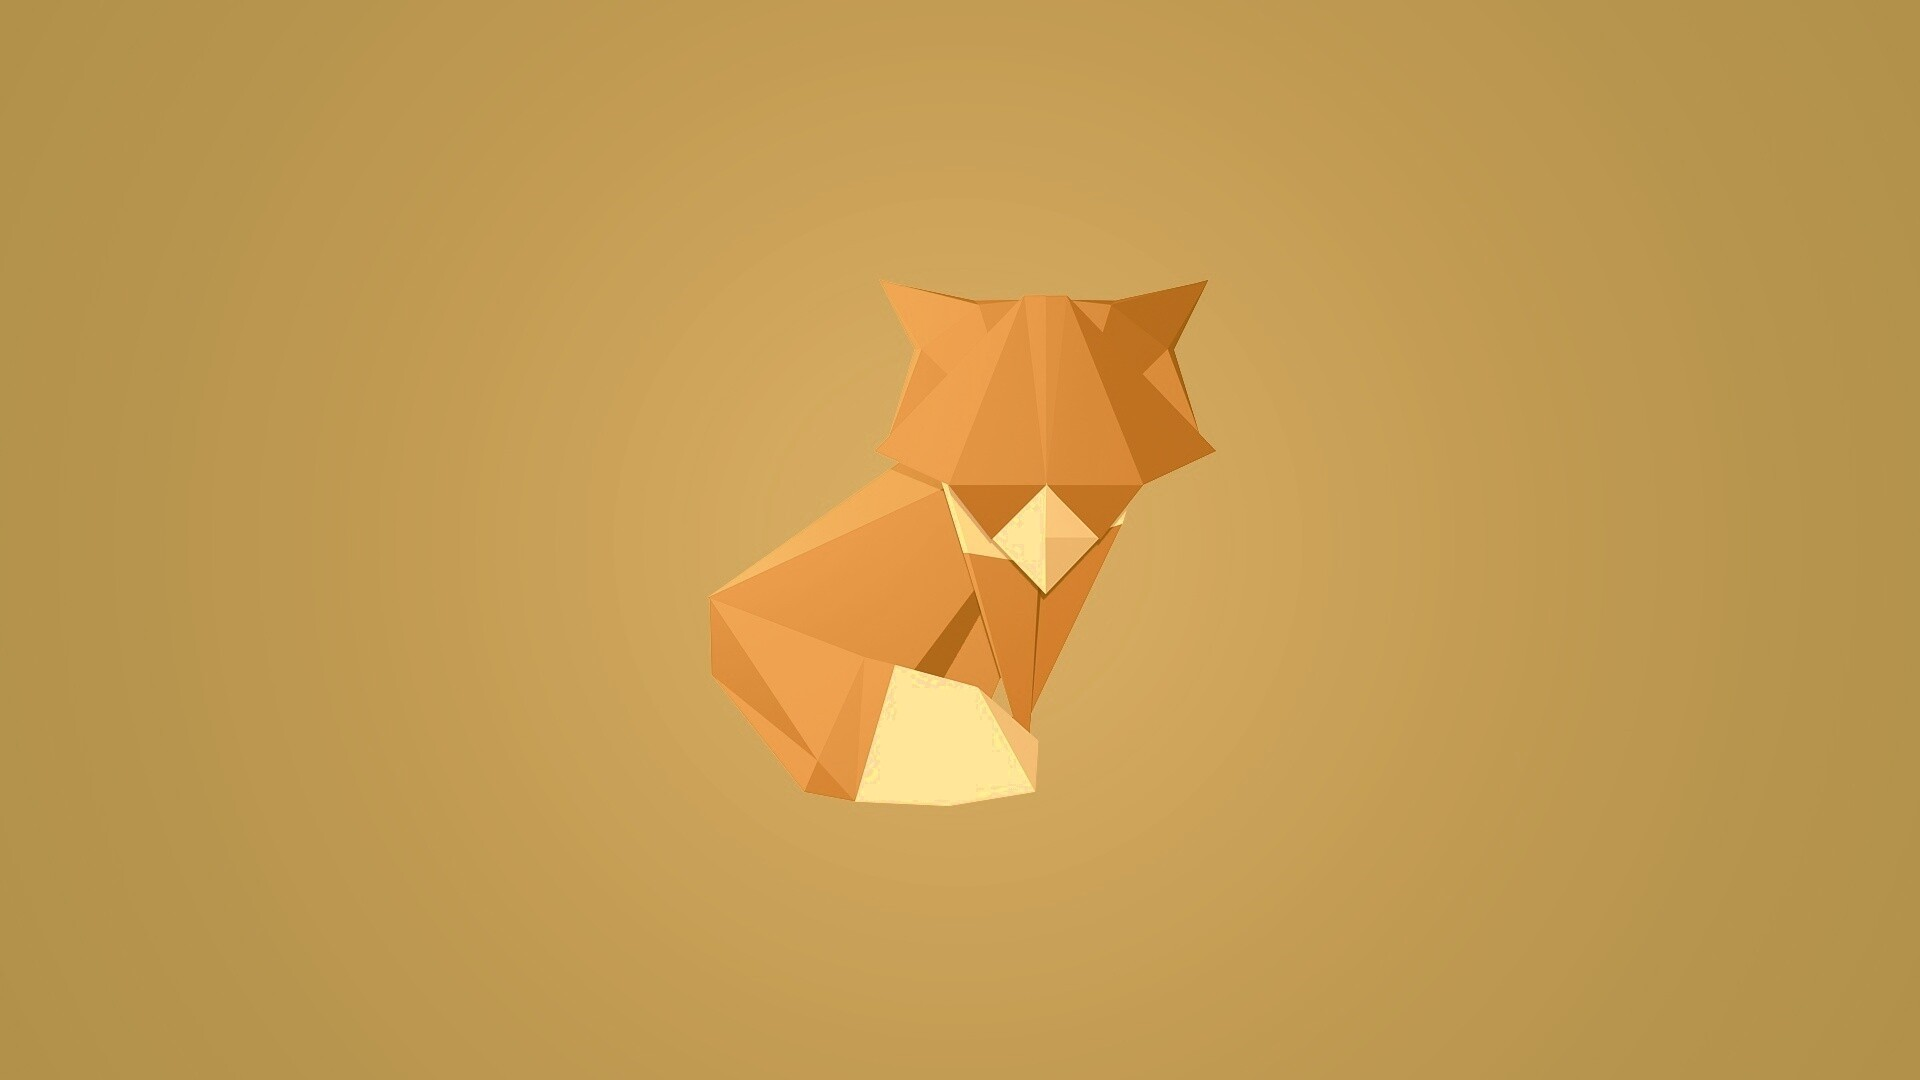 Cute Origami Wallpaper theme